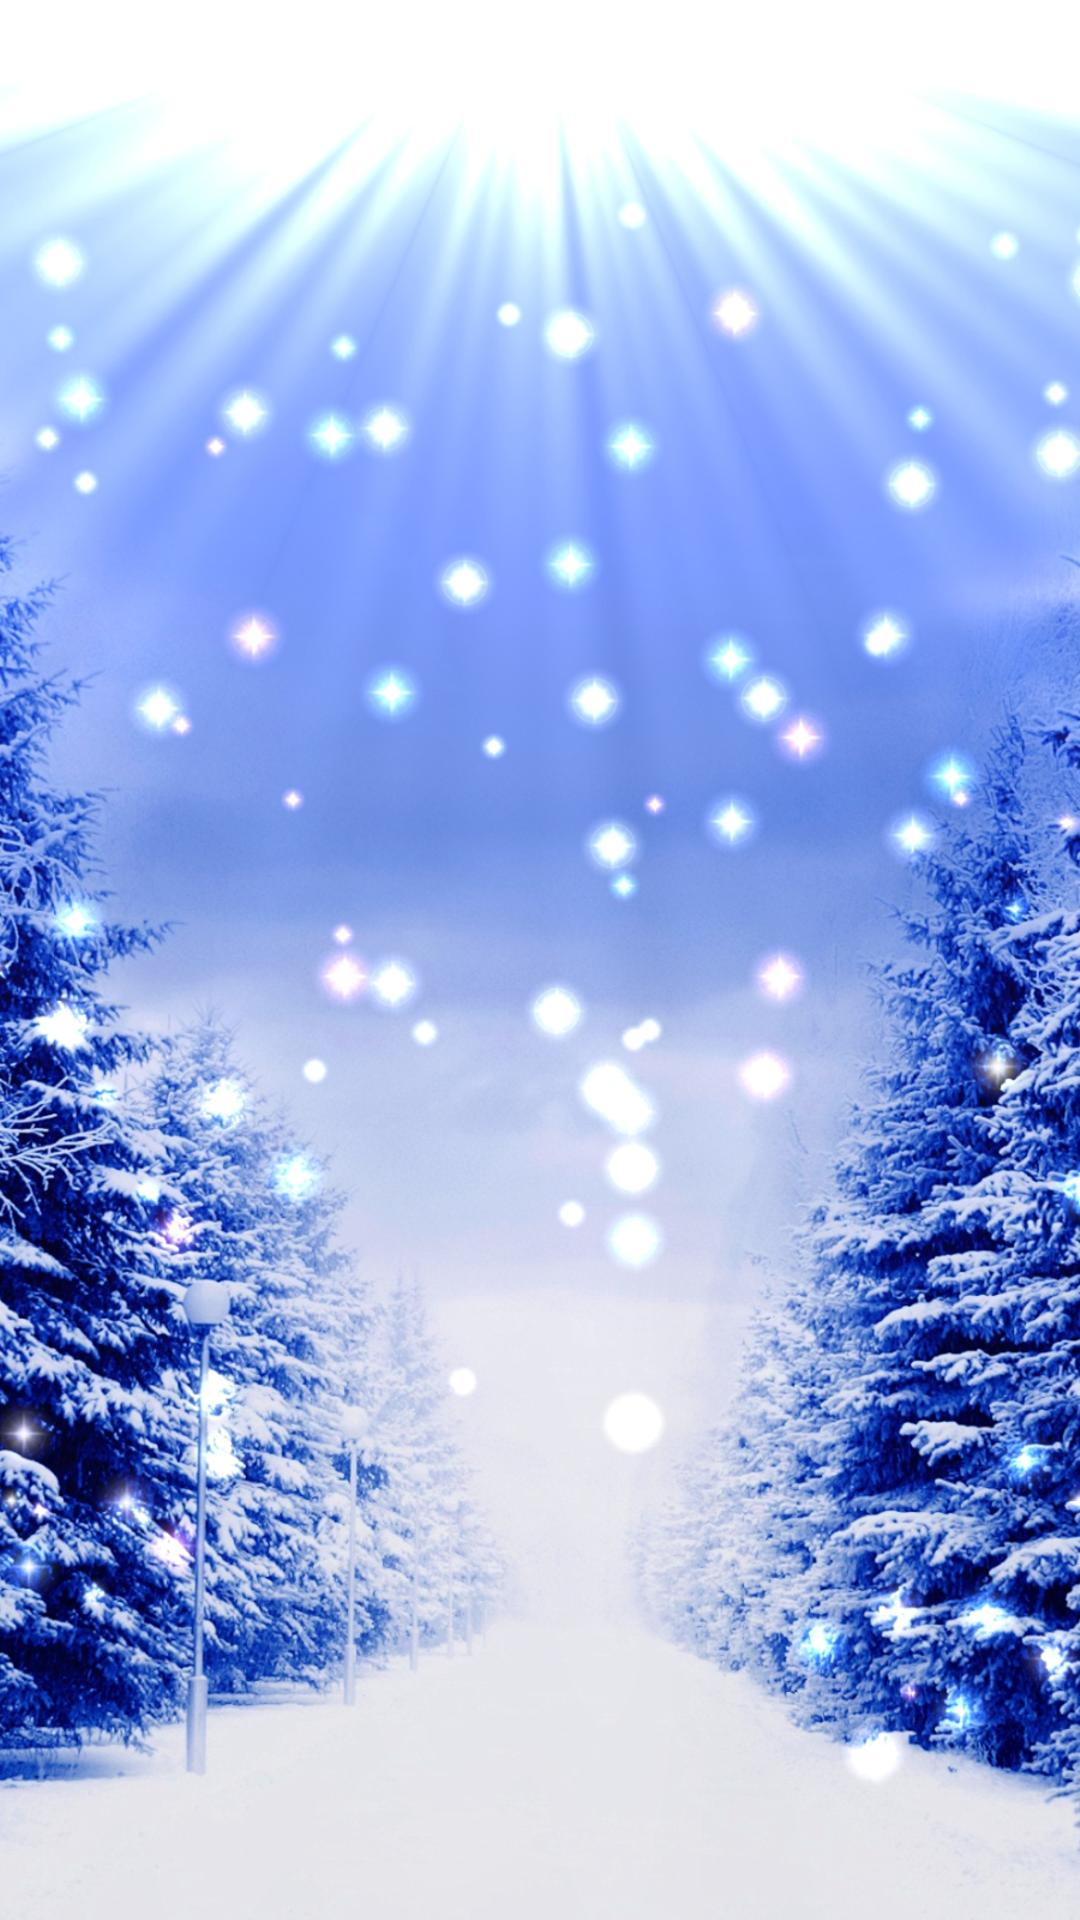 Blue Christmas Trees Full With White Snow Wallpaper Download 1080x1920